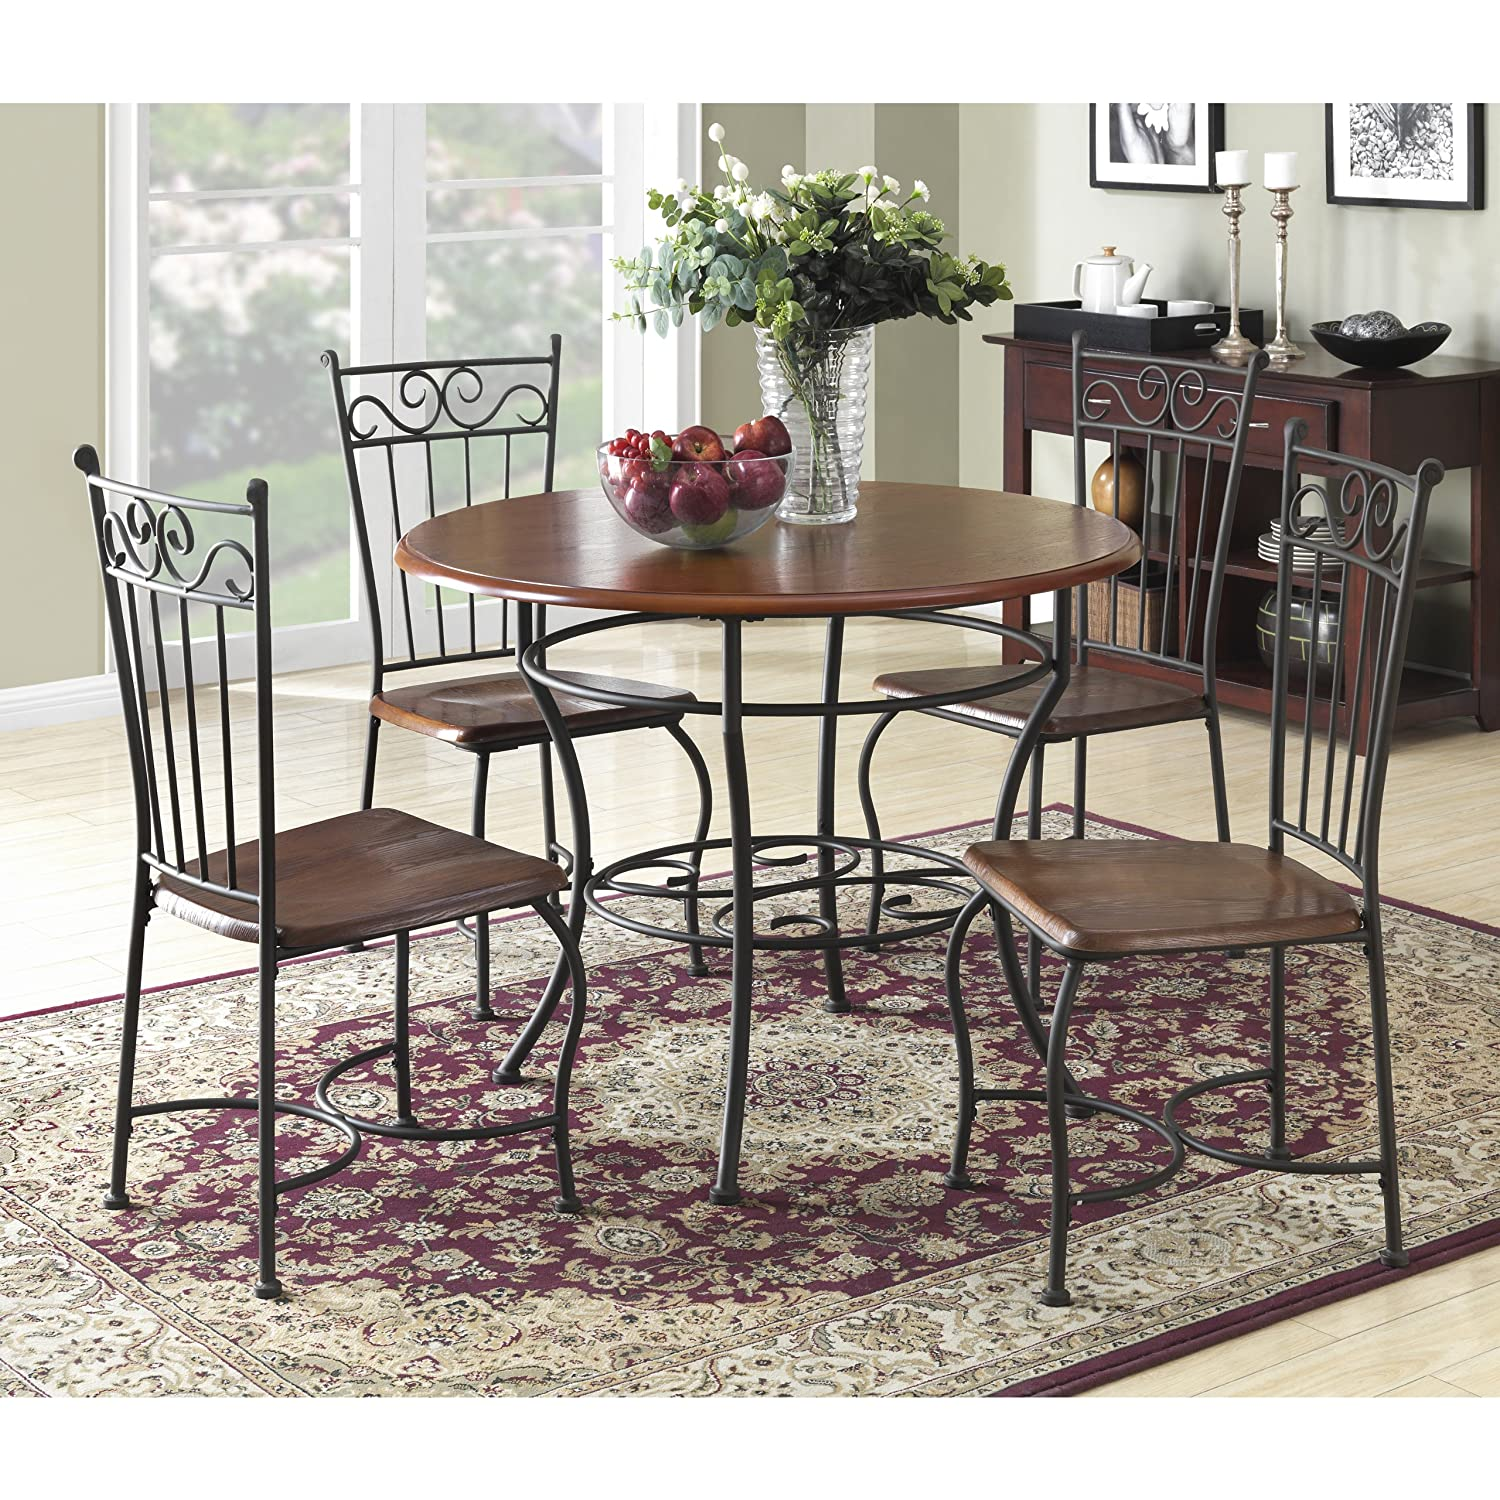 Amazon.com: Dorel Living 5 Piece Wood And Metal Cafe Style Dinette Set For  Kitchen Or Living Room: Kitchen U0026 Dining